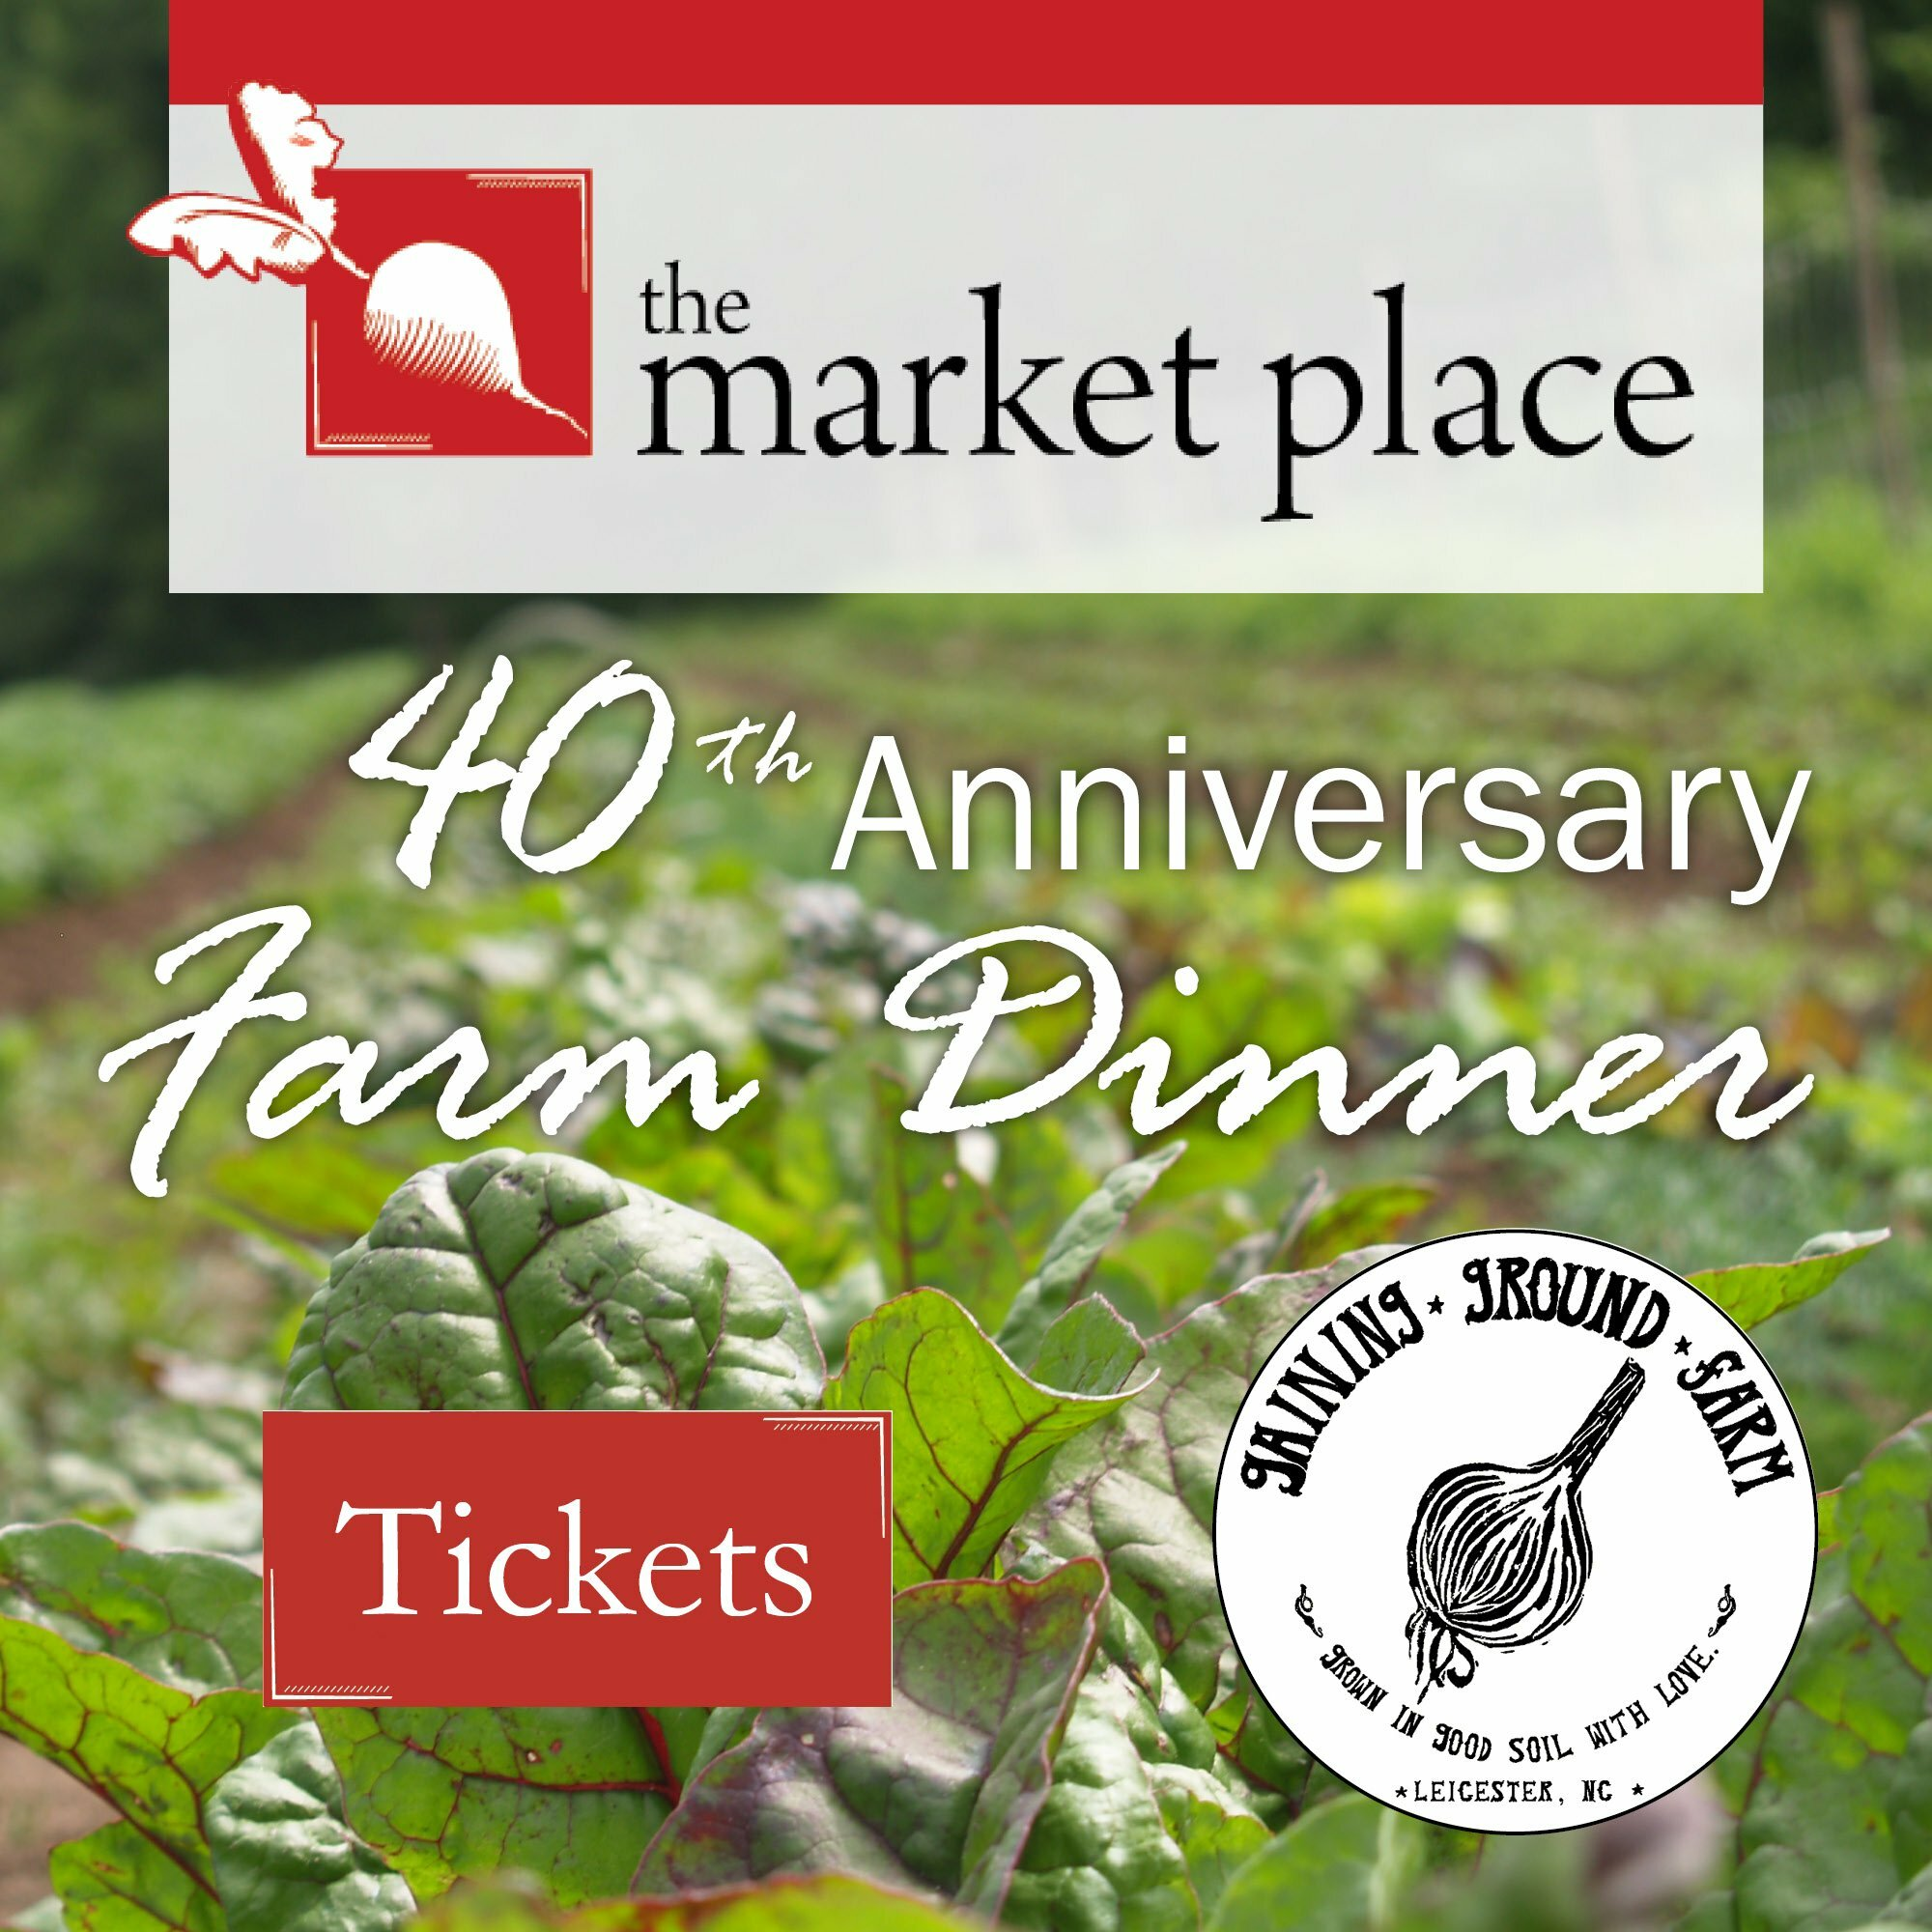 The Market Place Restaurant 40th Anniversary Dinner at Gaining Ground Farm - June 28